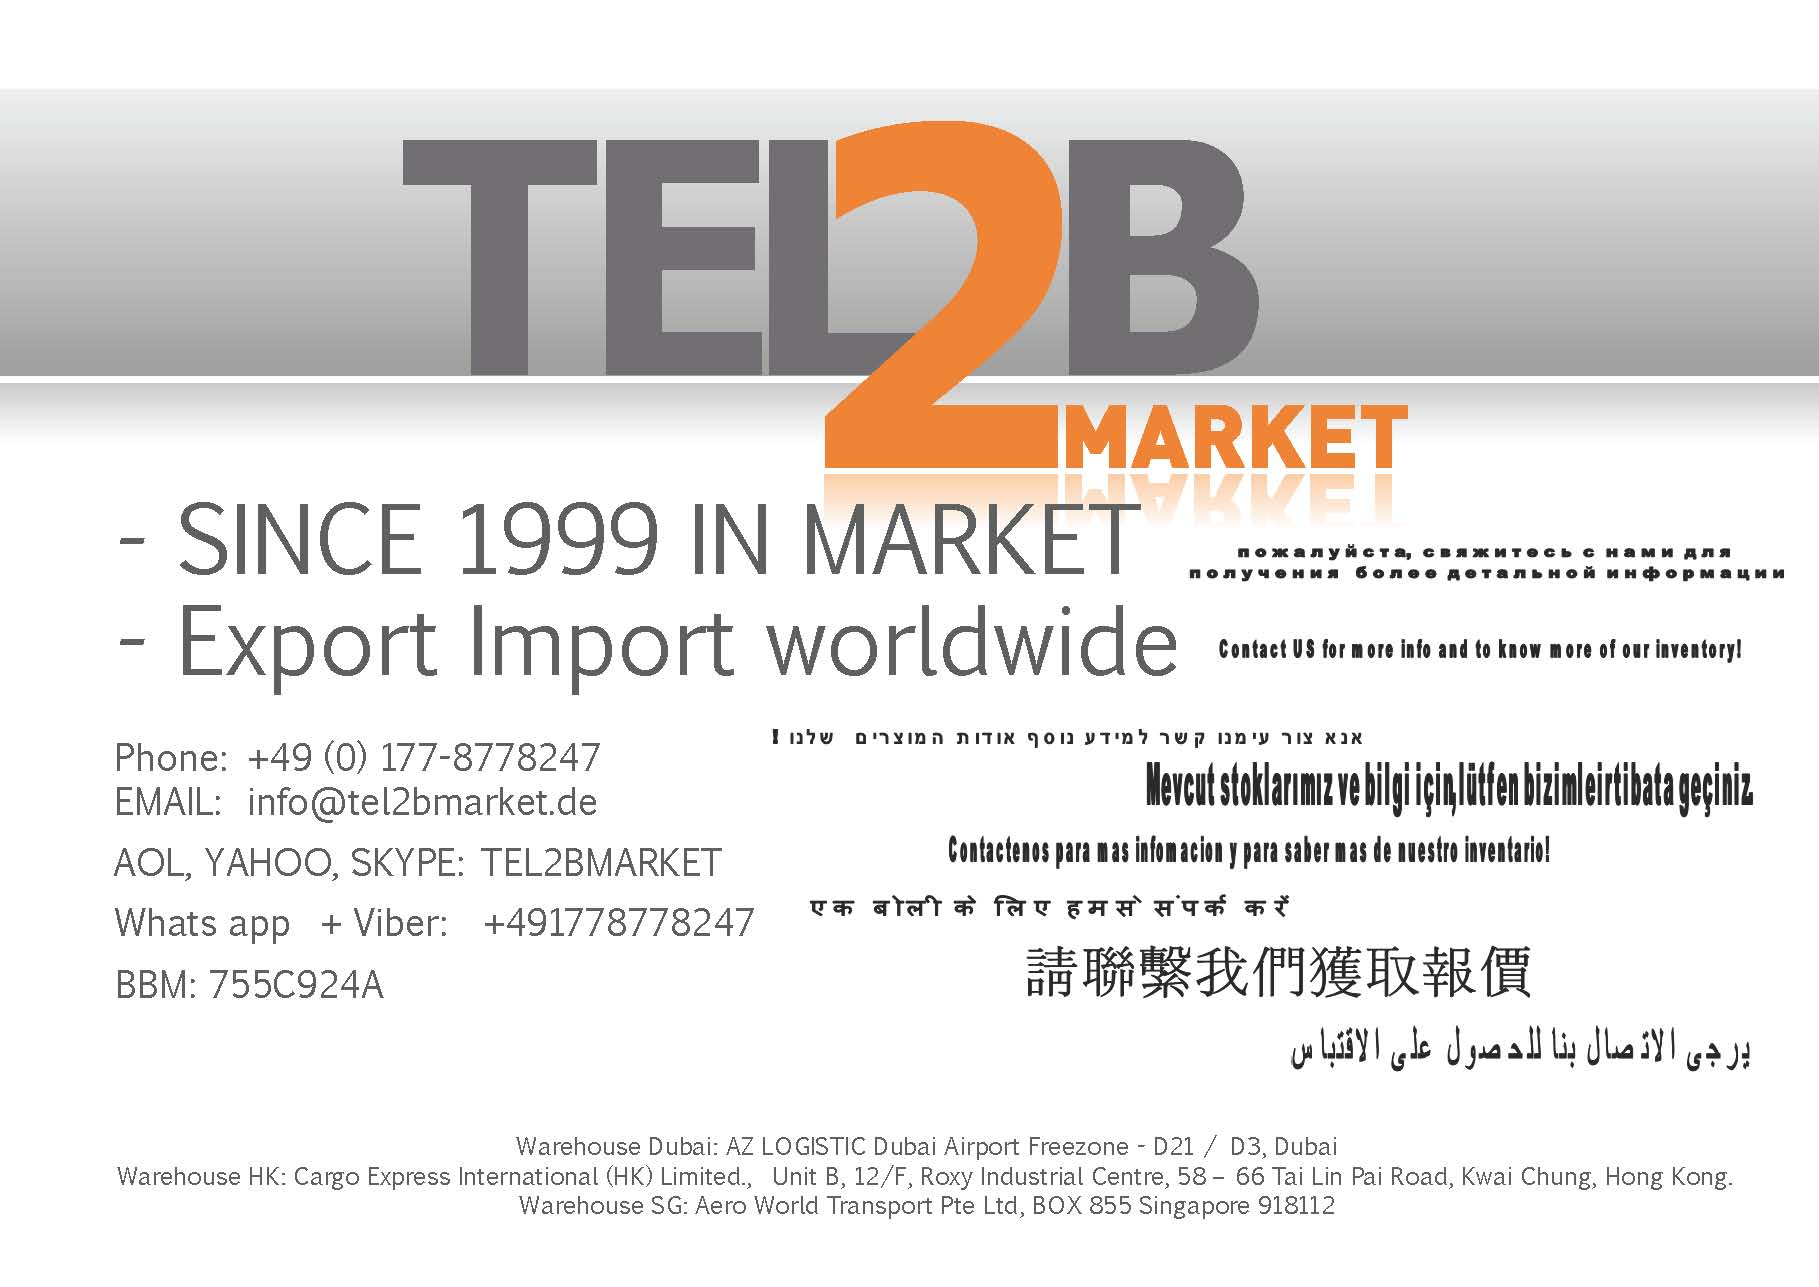 NETWORK OFFICIAL DISTRIBUTOR TEL2BMARKET - DELTAPLUS